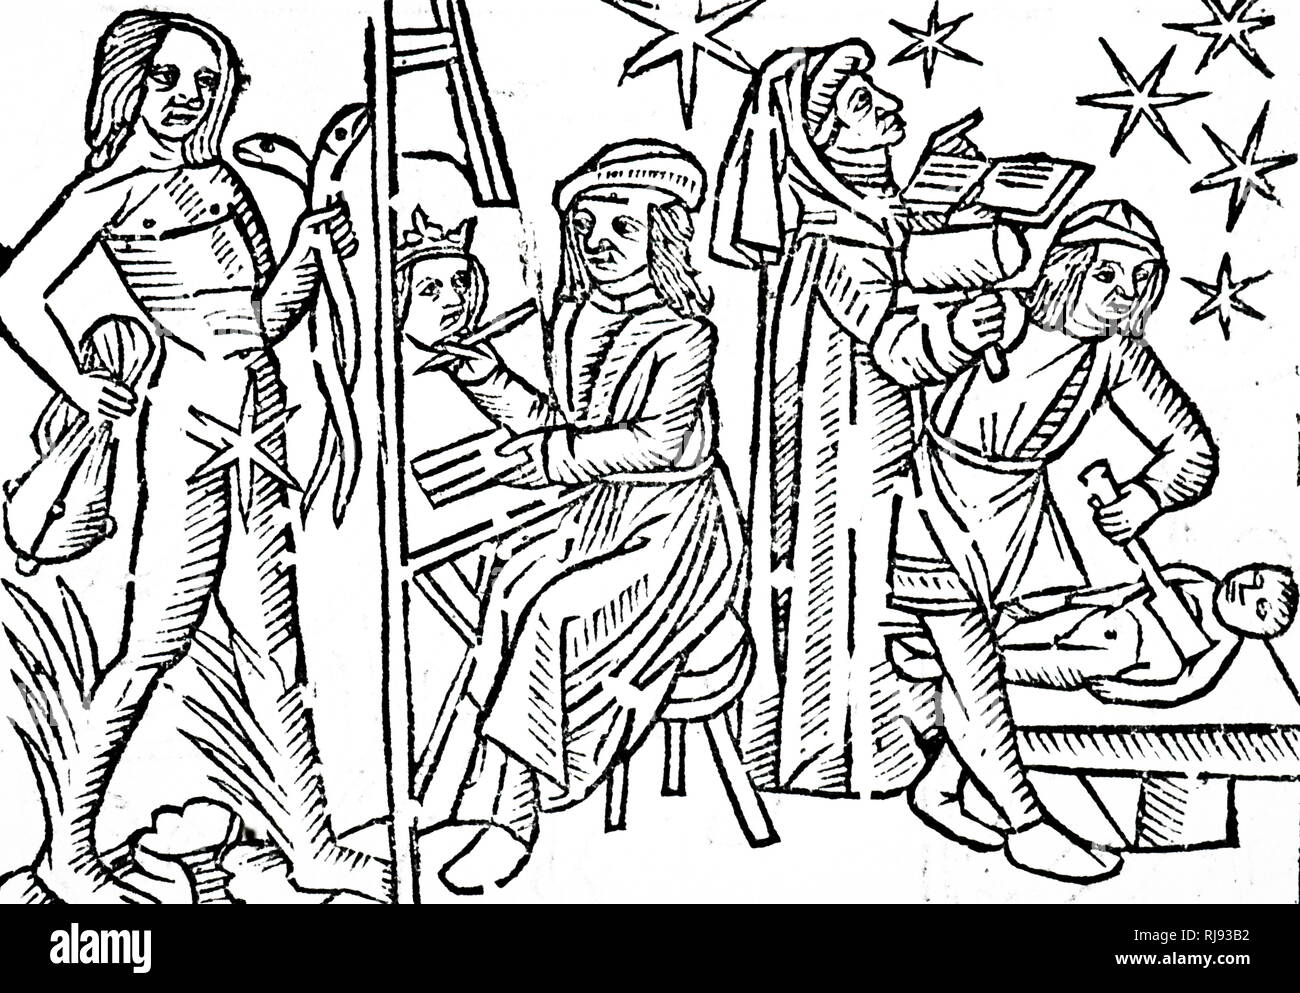 A woodcut engraving depicting Mercury and the activities under its government. Mercury was considered a male planet, and as dry and passive. Those born under Mercury were eloquent and inventive and loved science especially mathematics, and were tall, slender and delicate. The planet's metal was quicksilver, its day Wednesday and its night Saturday. It was friendly to the Sun and hostile to Venus and had two houses, Gemini by day and Virgo by night. Dated 16th century - Stock Image